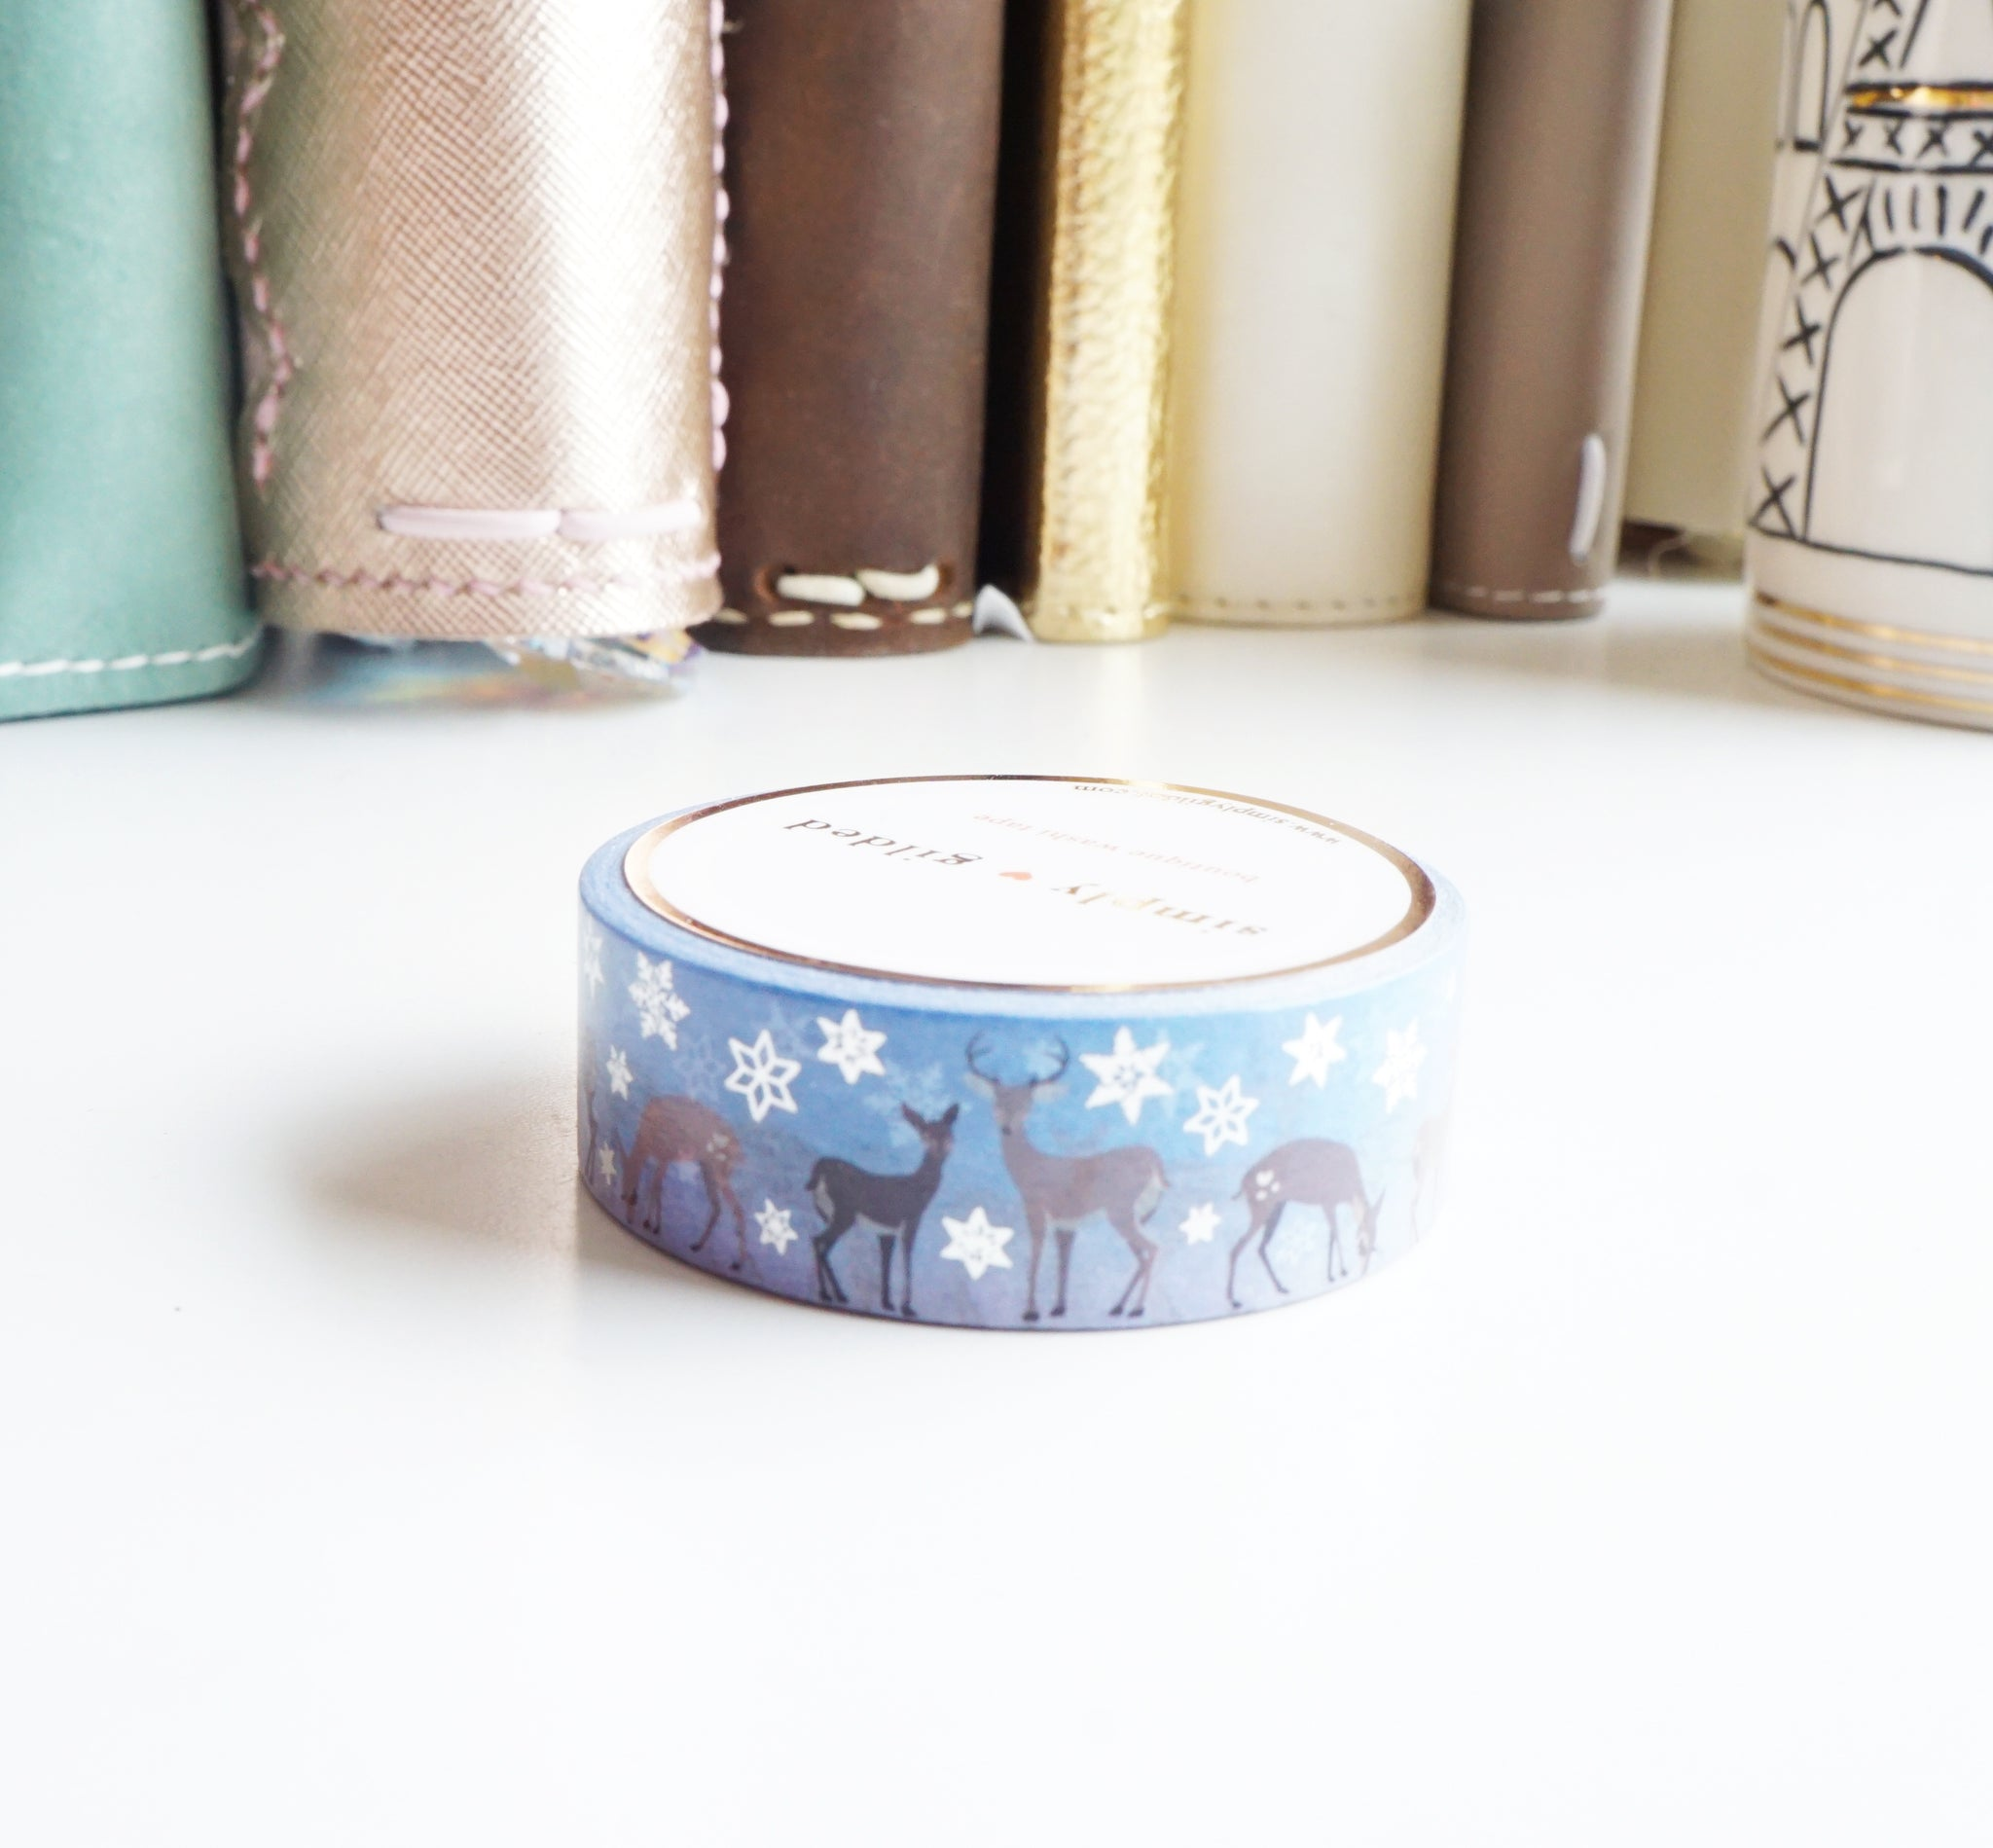 SNOW DEER 3.0 and silver foil washi tape - 15mm